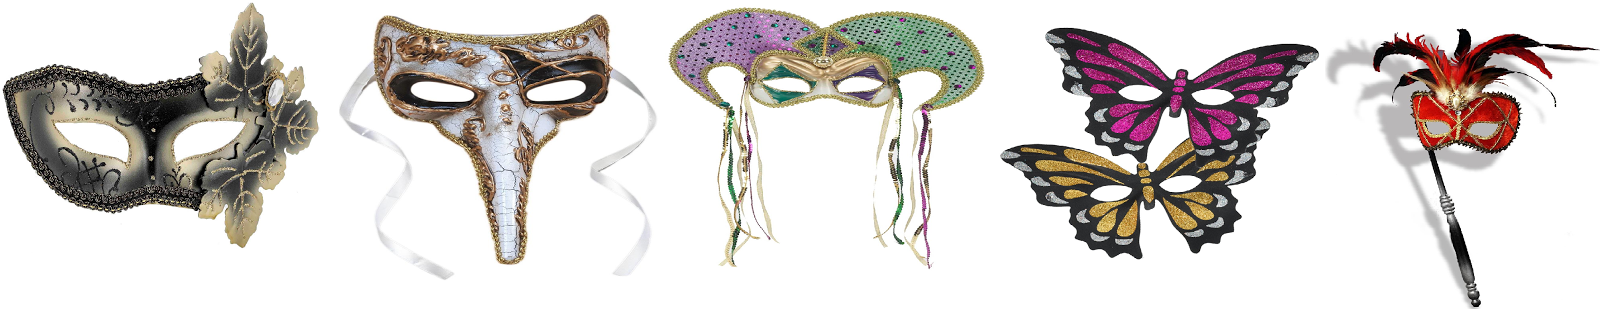 http://www.partybell.com/search.aspx?SearchTerm=Mardi+Gras+masks&x=0&y=0